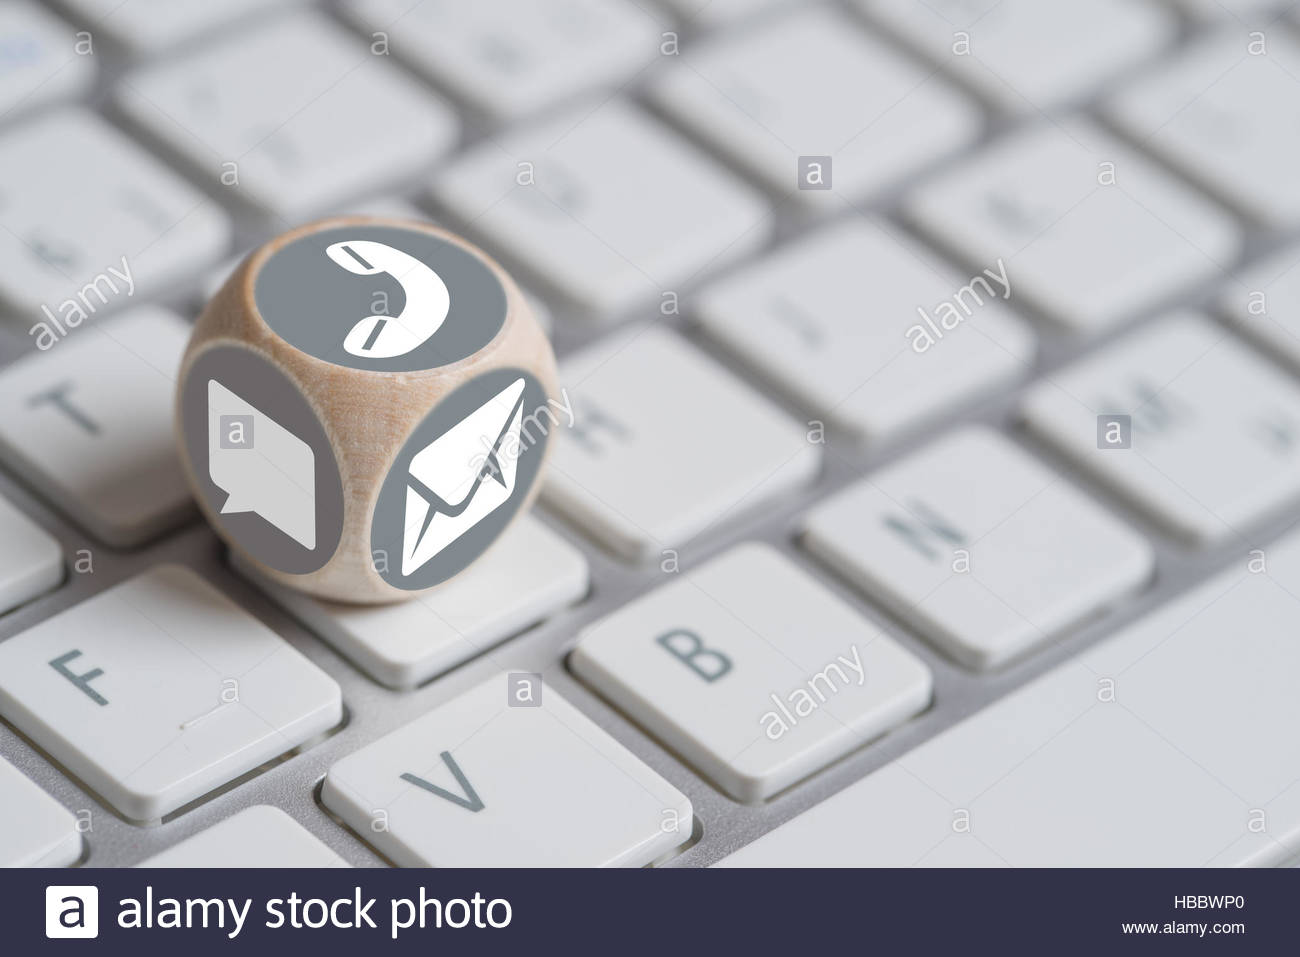 Copyright symbol keyboard pc gallery symbol and sign ideas symbols on qwerty keyboard gallery symbol and sign ideas symbols from keyboard images symbol and sign biocorpaavc Image collections